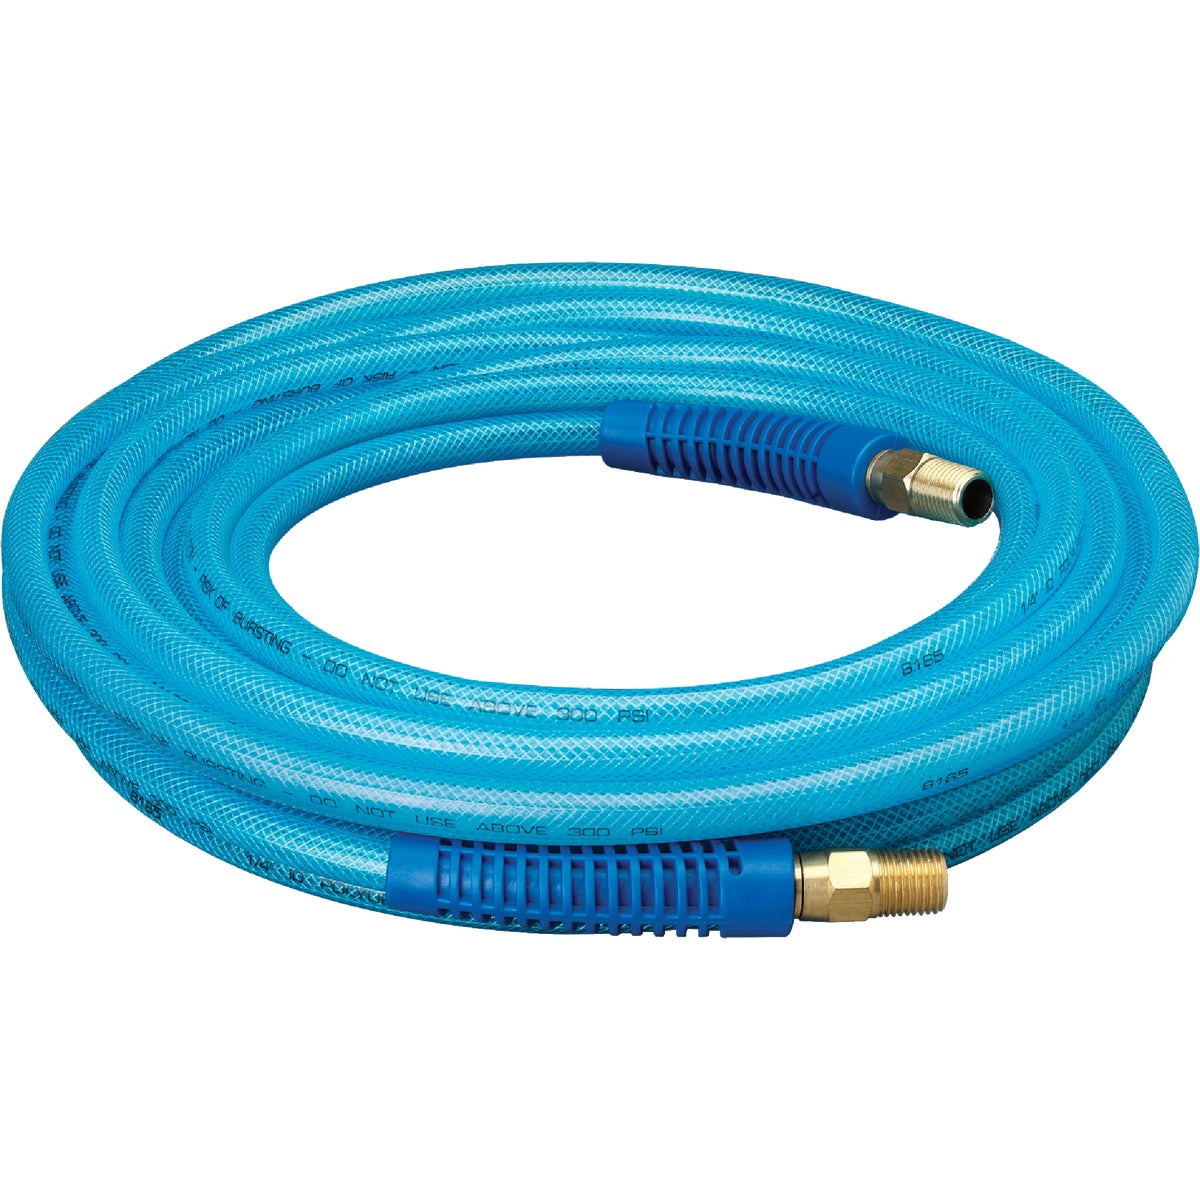 "25' X 1/4"" POLY AIR HOSE - 12-25E by Plews  Lubrimatic"